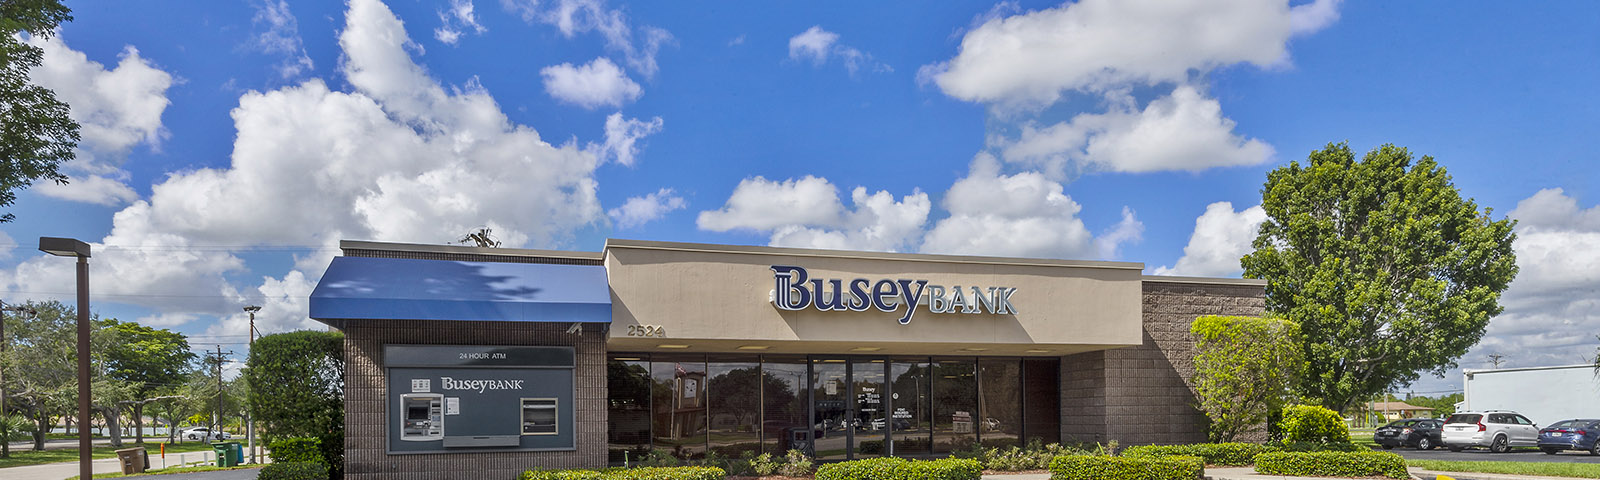 Busey Bank Cape Coral location